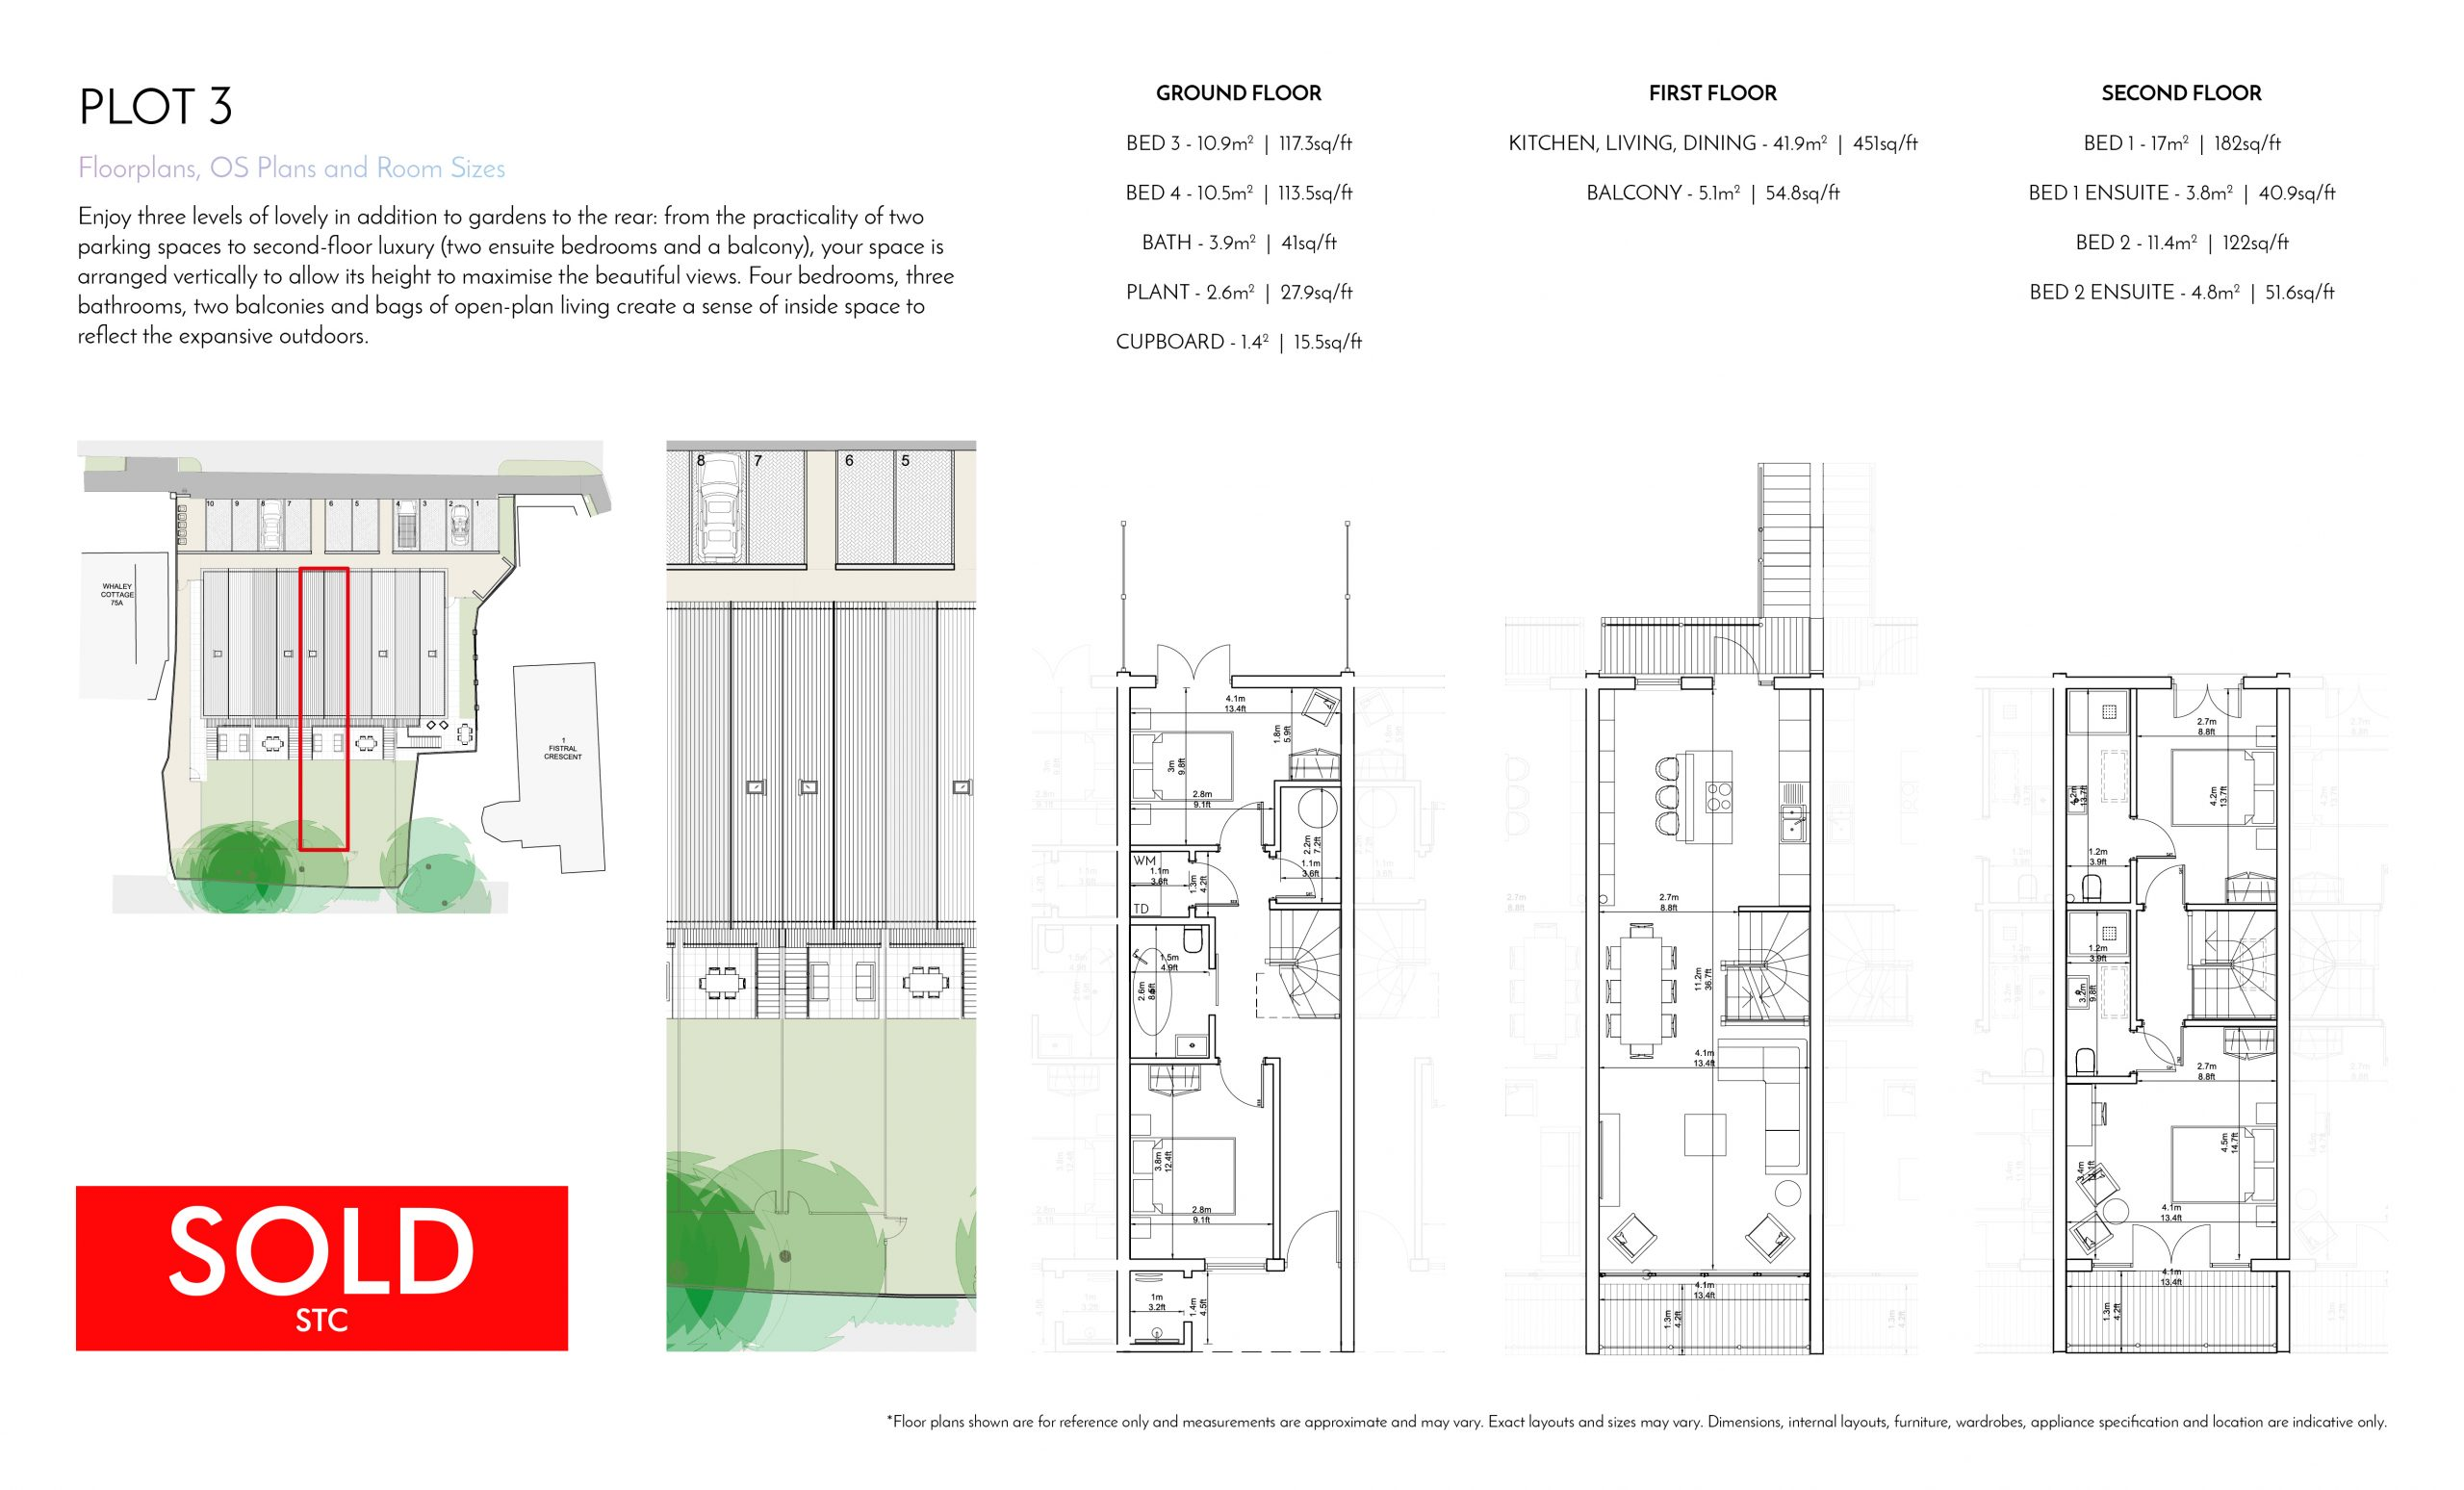 Stephens and Stephens Developers Breakwater Pentire Newquay Cornwall Floorplans Plot 3 SOLD